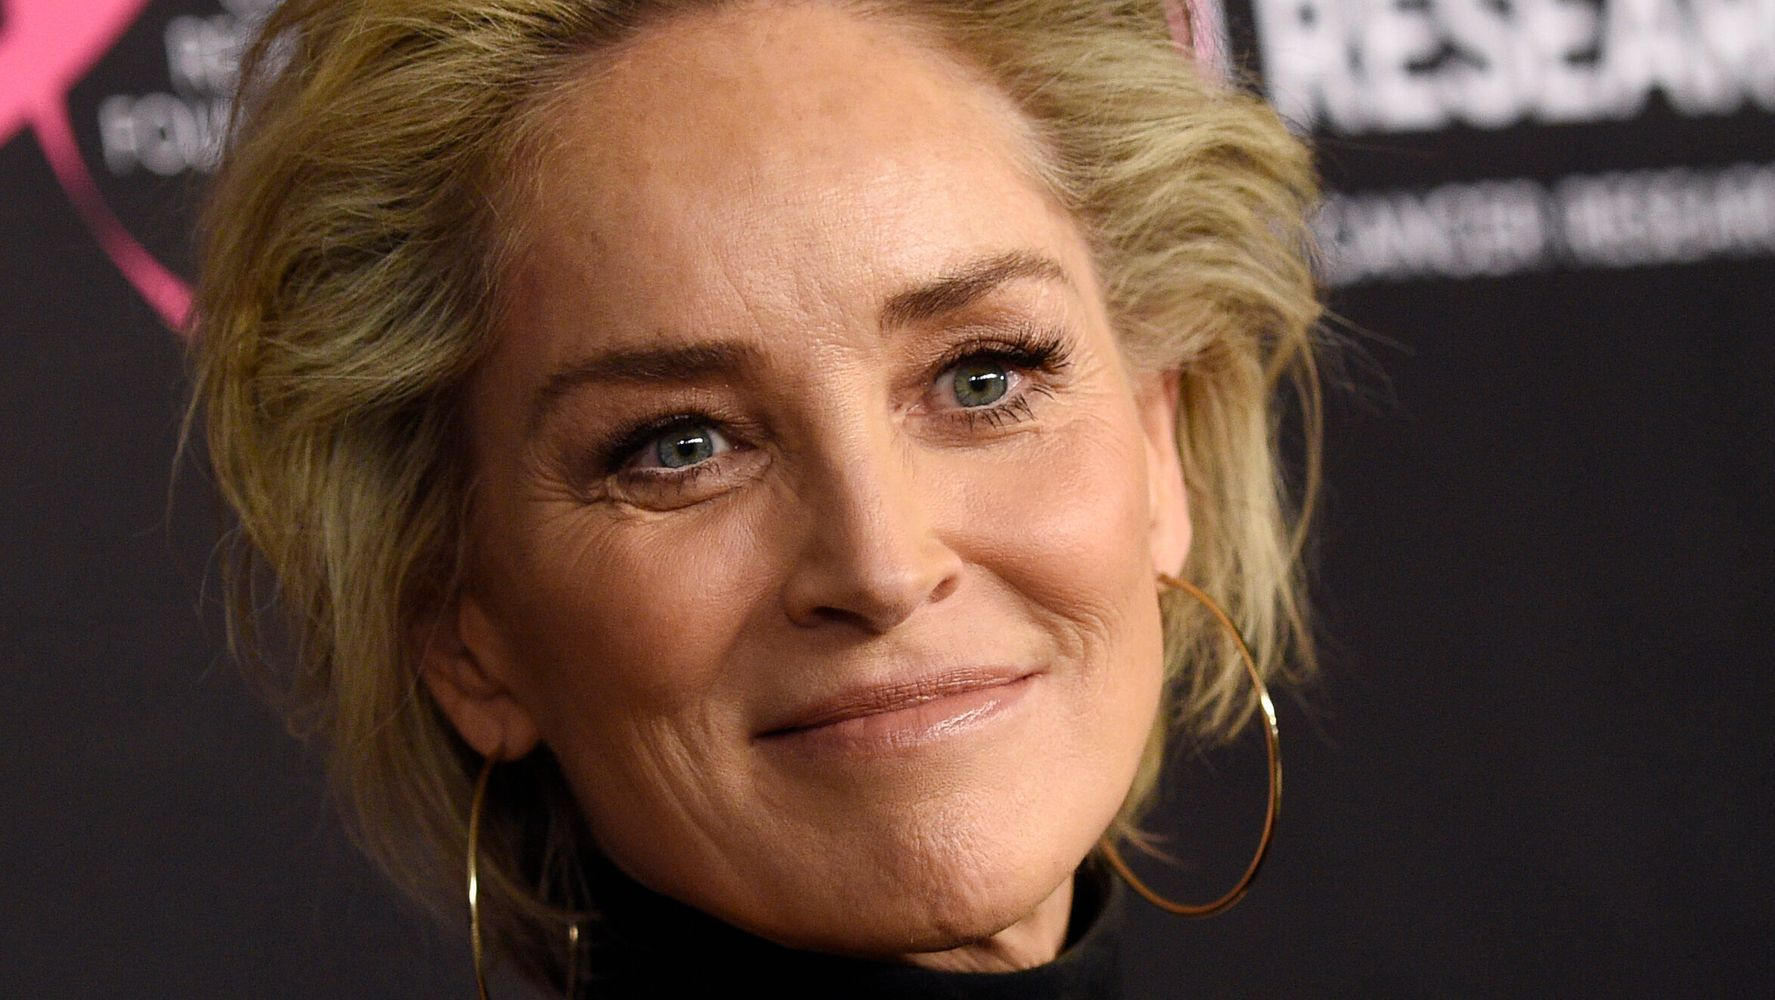 Westlake Legal Group 5e0d467b25000079bad31918 Sharon Stone Did Not Take Kindly To Bumble's Quip After Unblocking Her From App